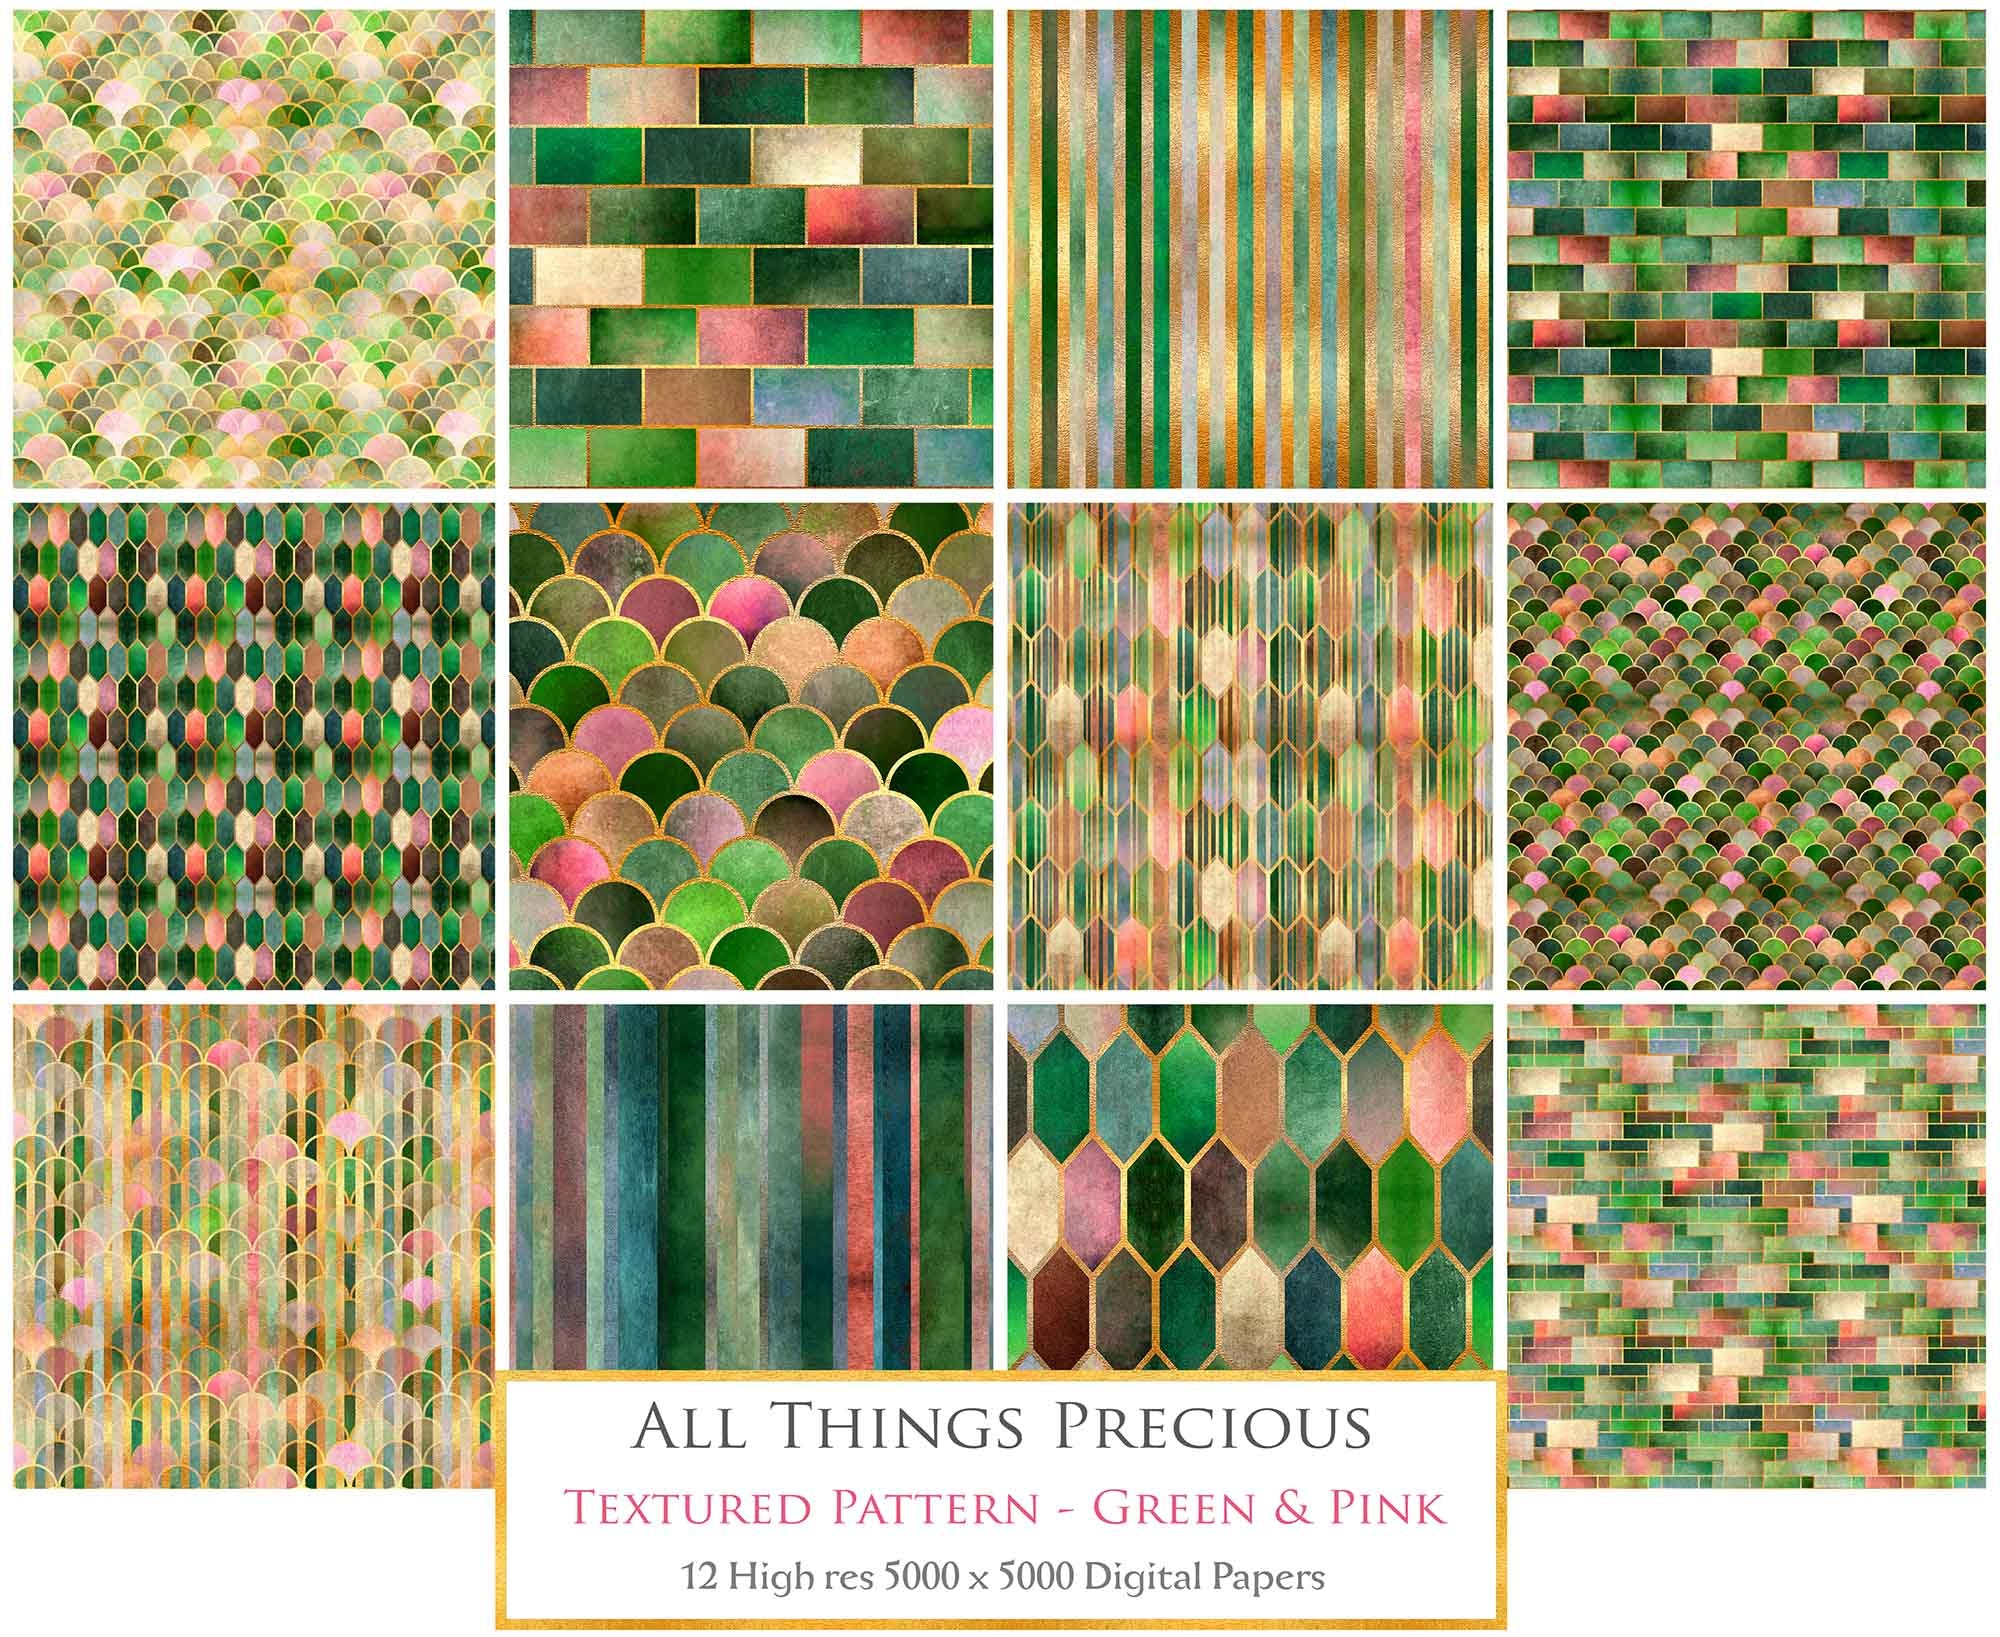 TEXTURED PATTERN - Gold, Green & Pink - Digital Papers